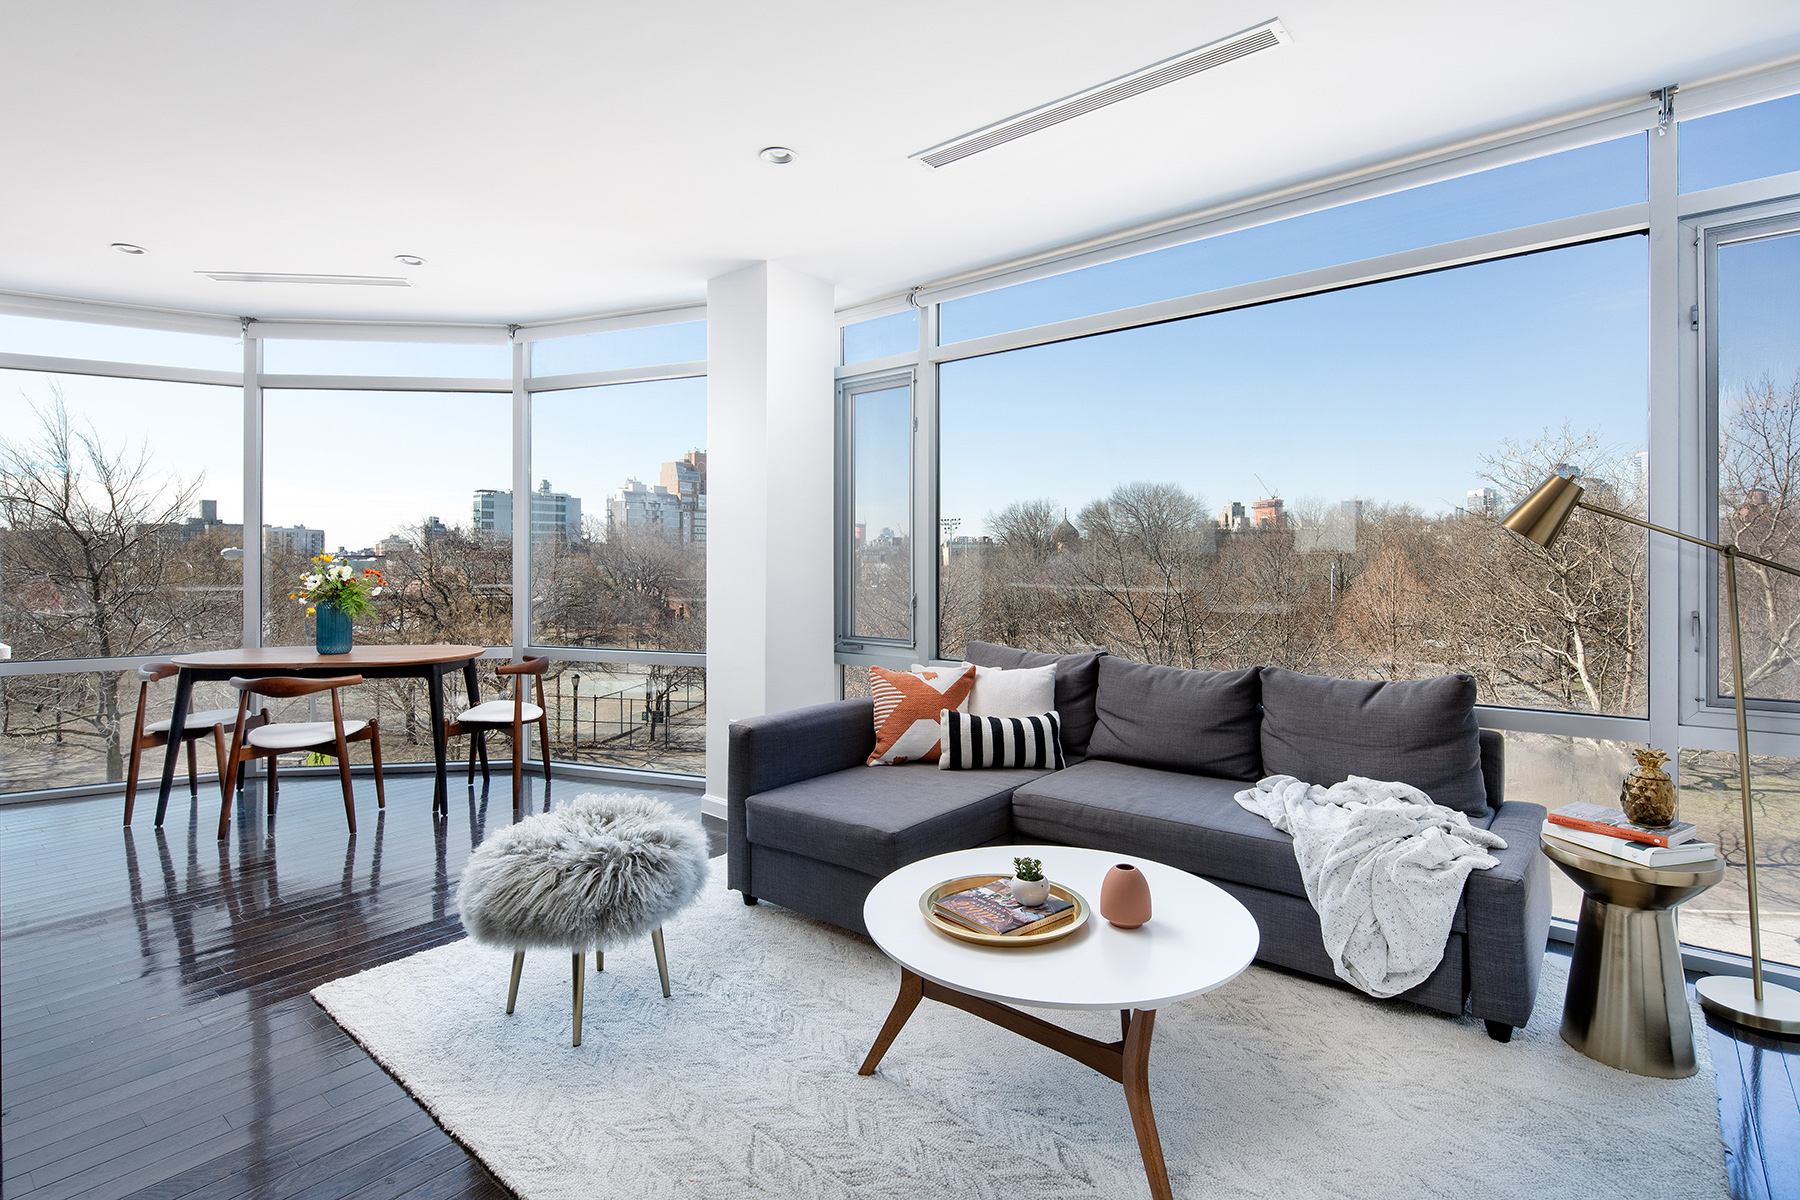 SOLD: 524 Manhattan Ave, Unit 3B